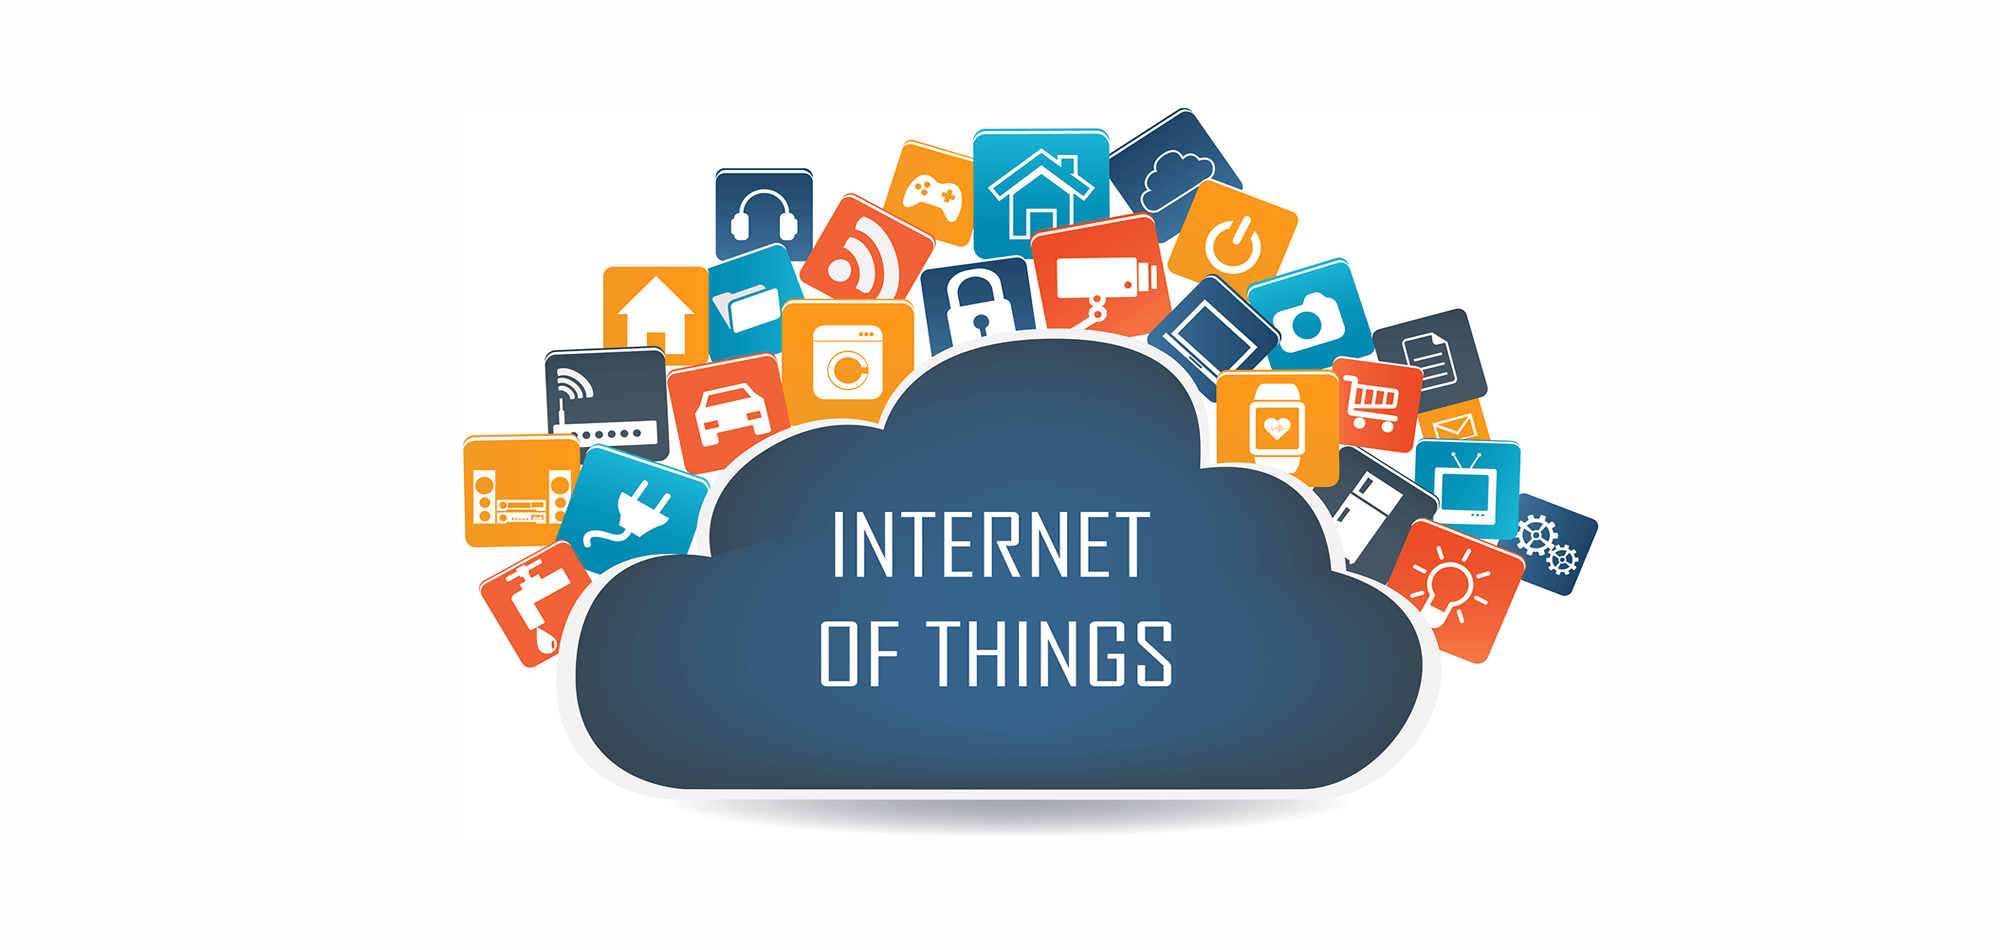 6 Tips for Preparing Your Wireless Network for the Internet of Things